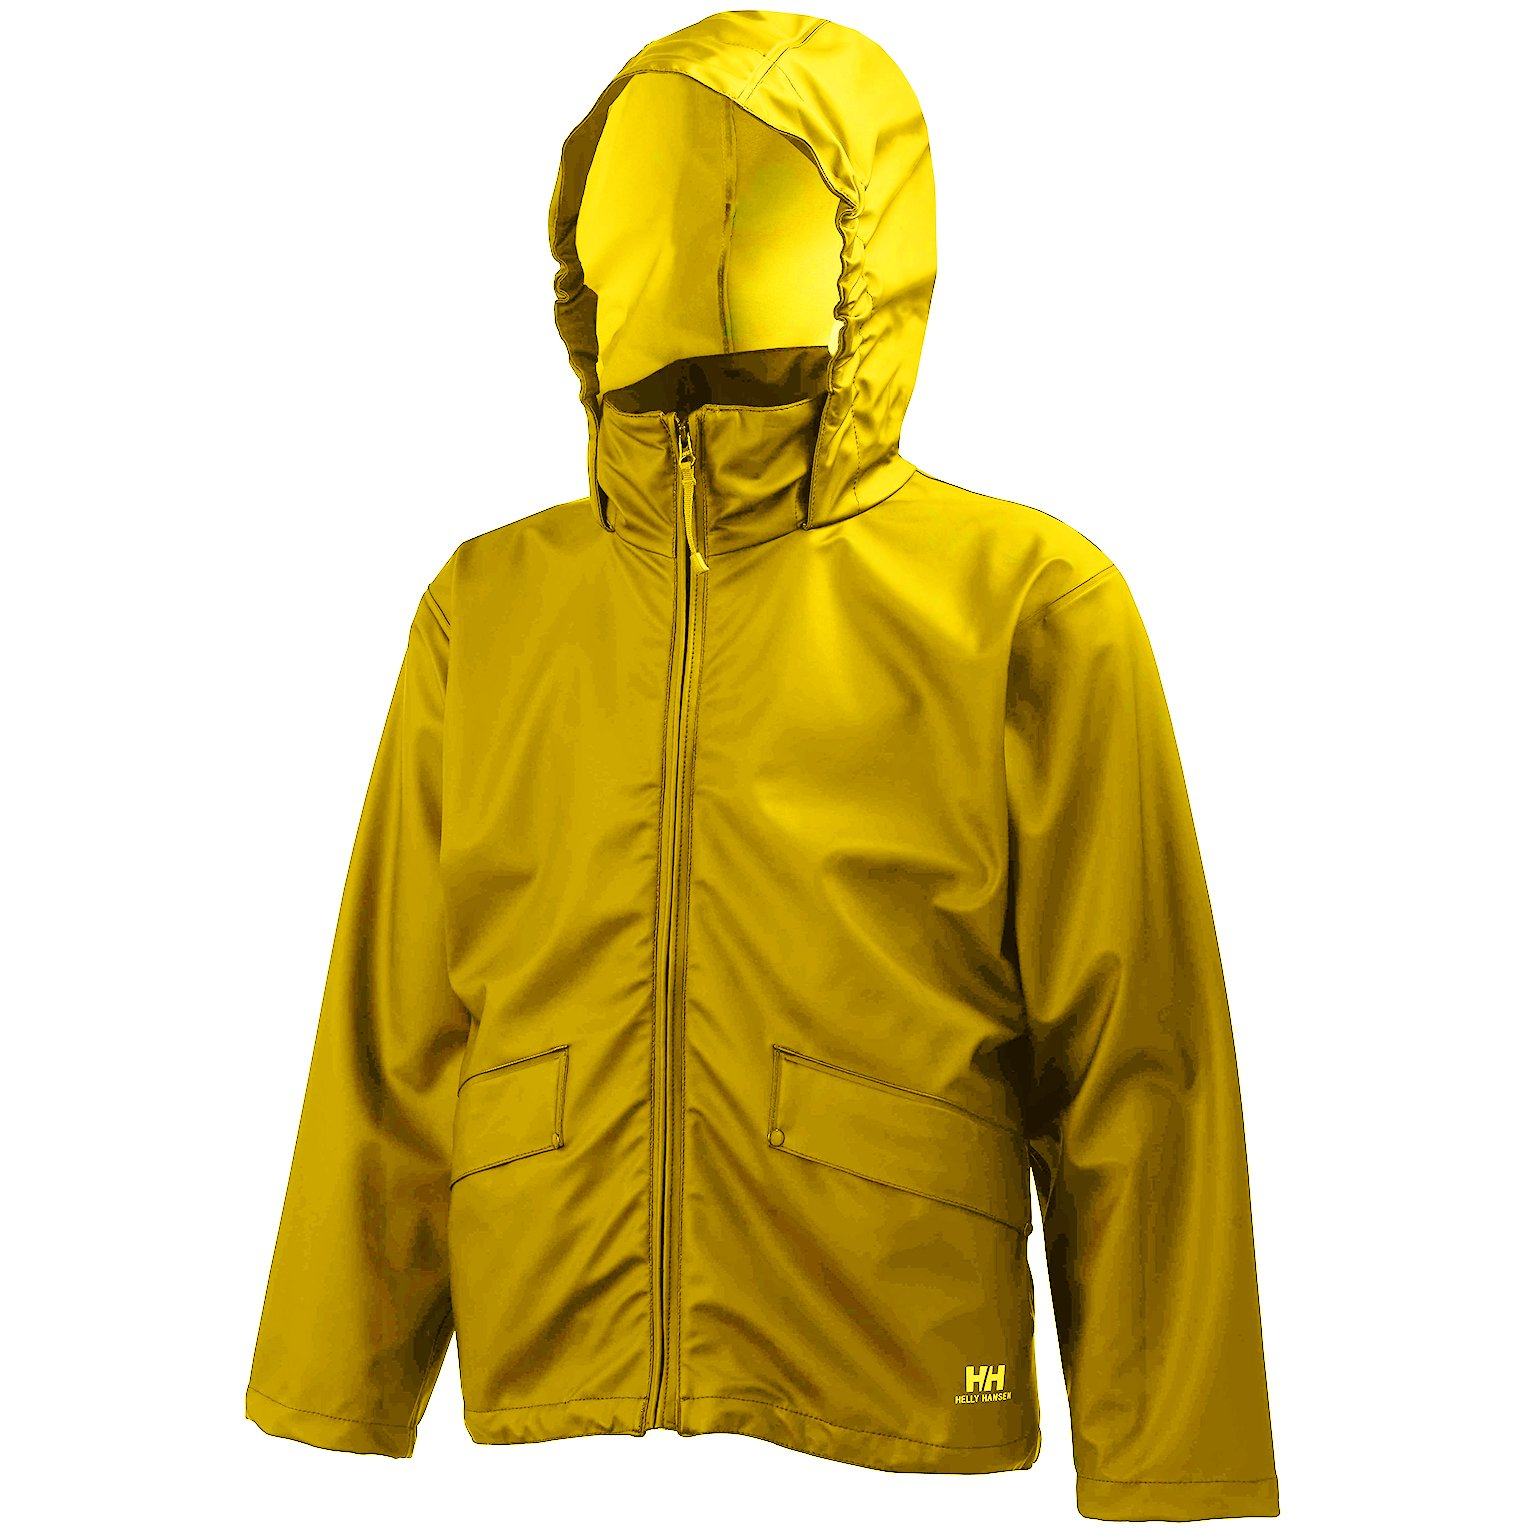 Helly Hansen Voss Waterproof Jacket/Mens Workwear (XXL) (Yellow) by Helly Hansen